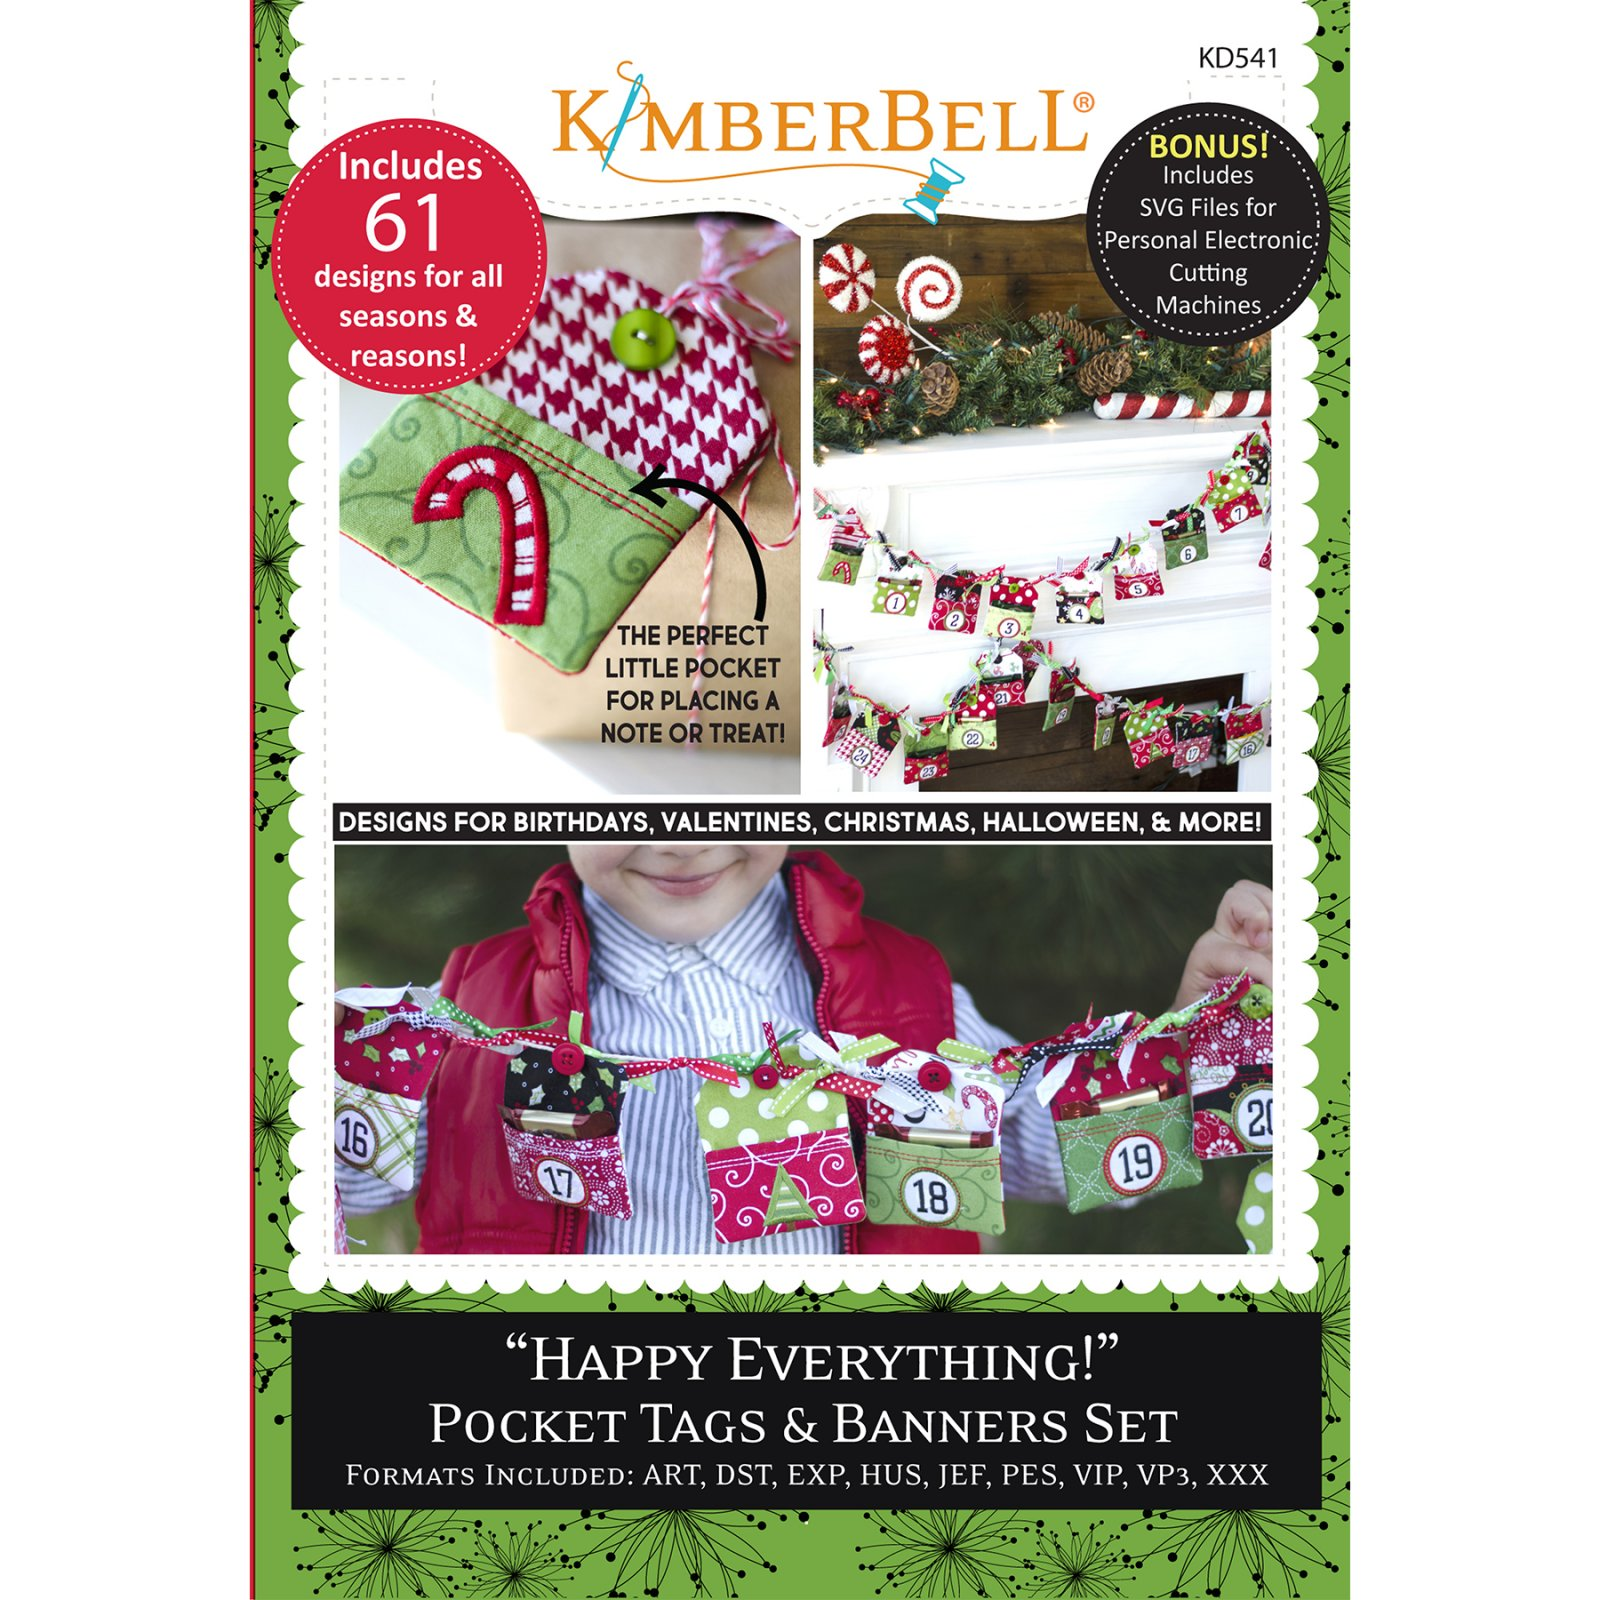 *HAPPY EVERYTHING!//POCKET TAGS & BANNERS SET//CD MULTI FORMAT//KIMBERBELL